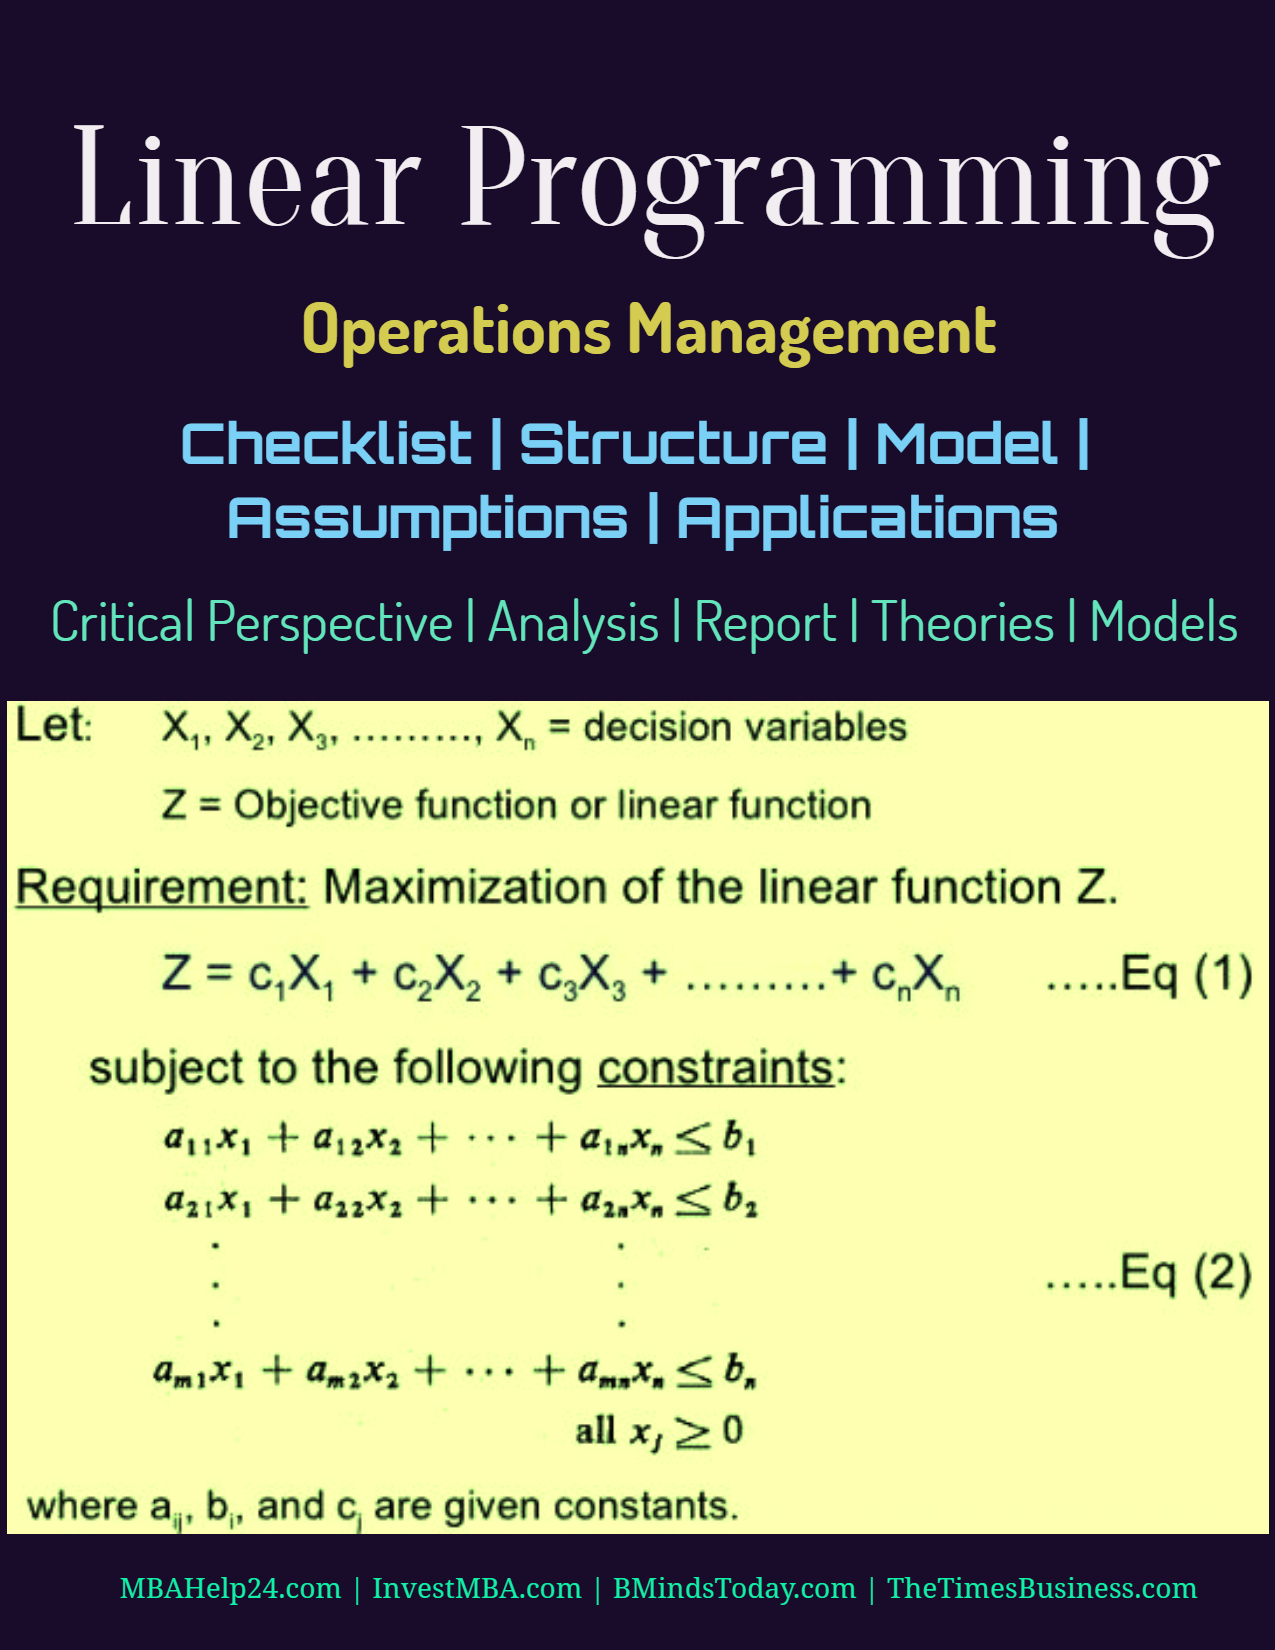 Linear Programming | Checklist | Structure | Model | Assumptions | Applications Linear Programming Linear Programming | Checklist | Structure | Model | Assumptions | Applications Linear Programming Checklist Structure Model Assumptions Applications linear programming | structure | model | assumptions Linear Programming | Structure | Model | Assumptions Linear Programming Checklist Structure Model Assumptions Applications